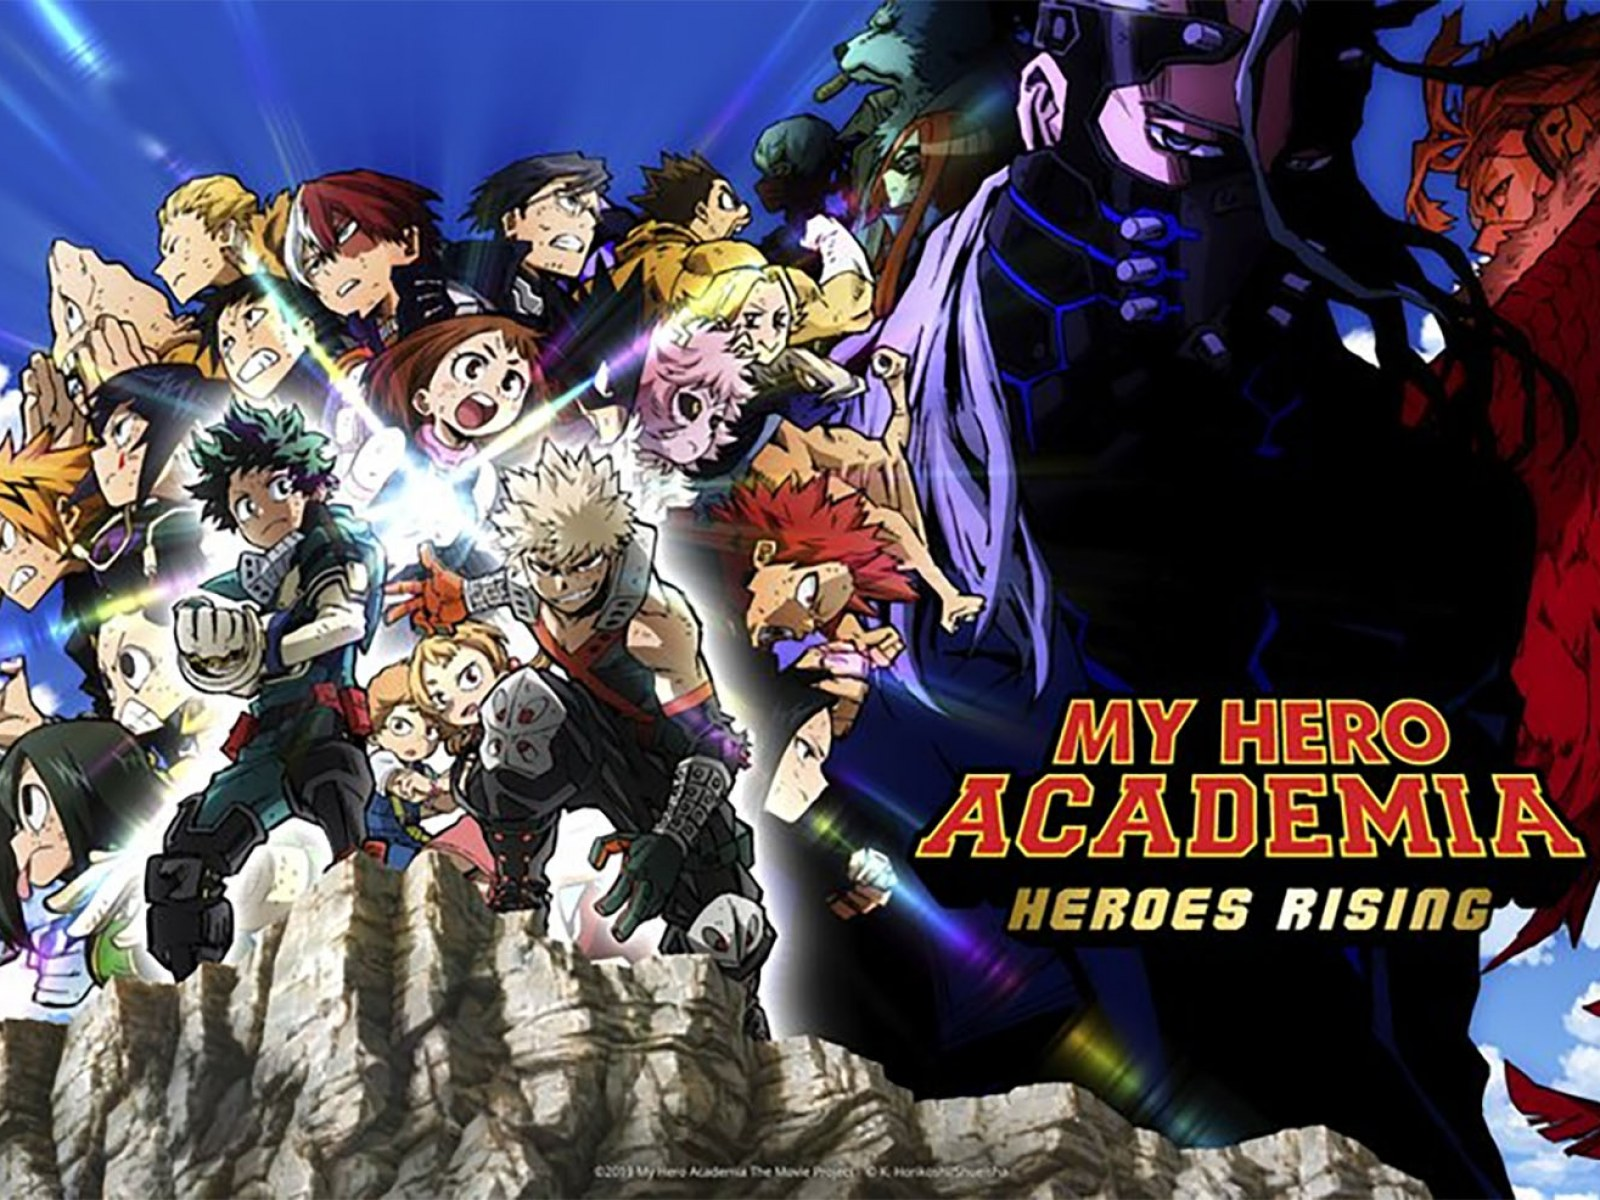 My Hero Academia Heroes Rising Review Action Character Moments Overshadow A Lackluster Ending